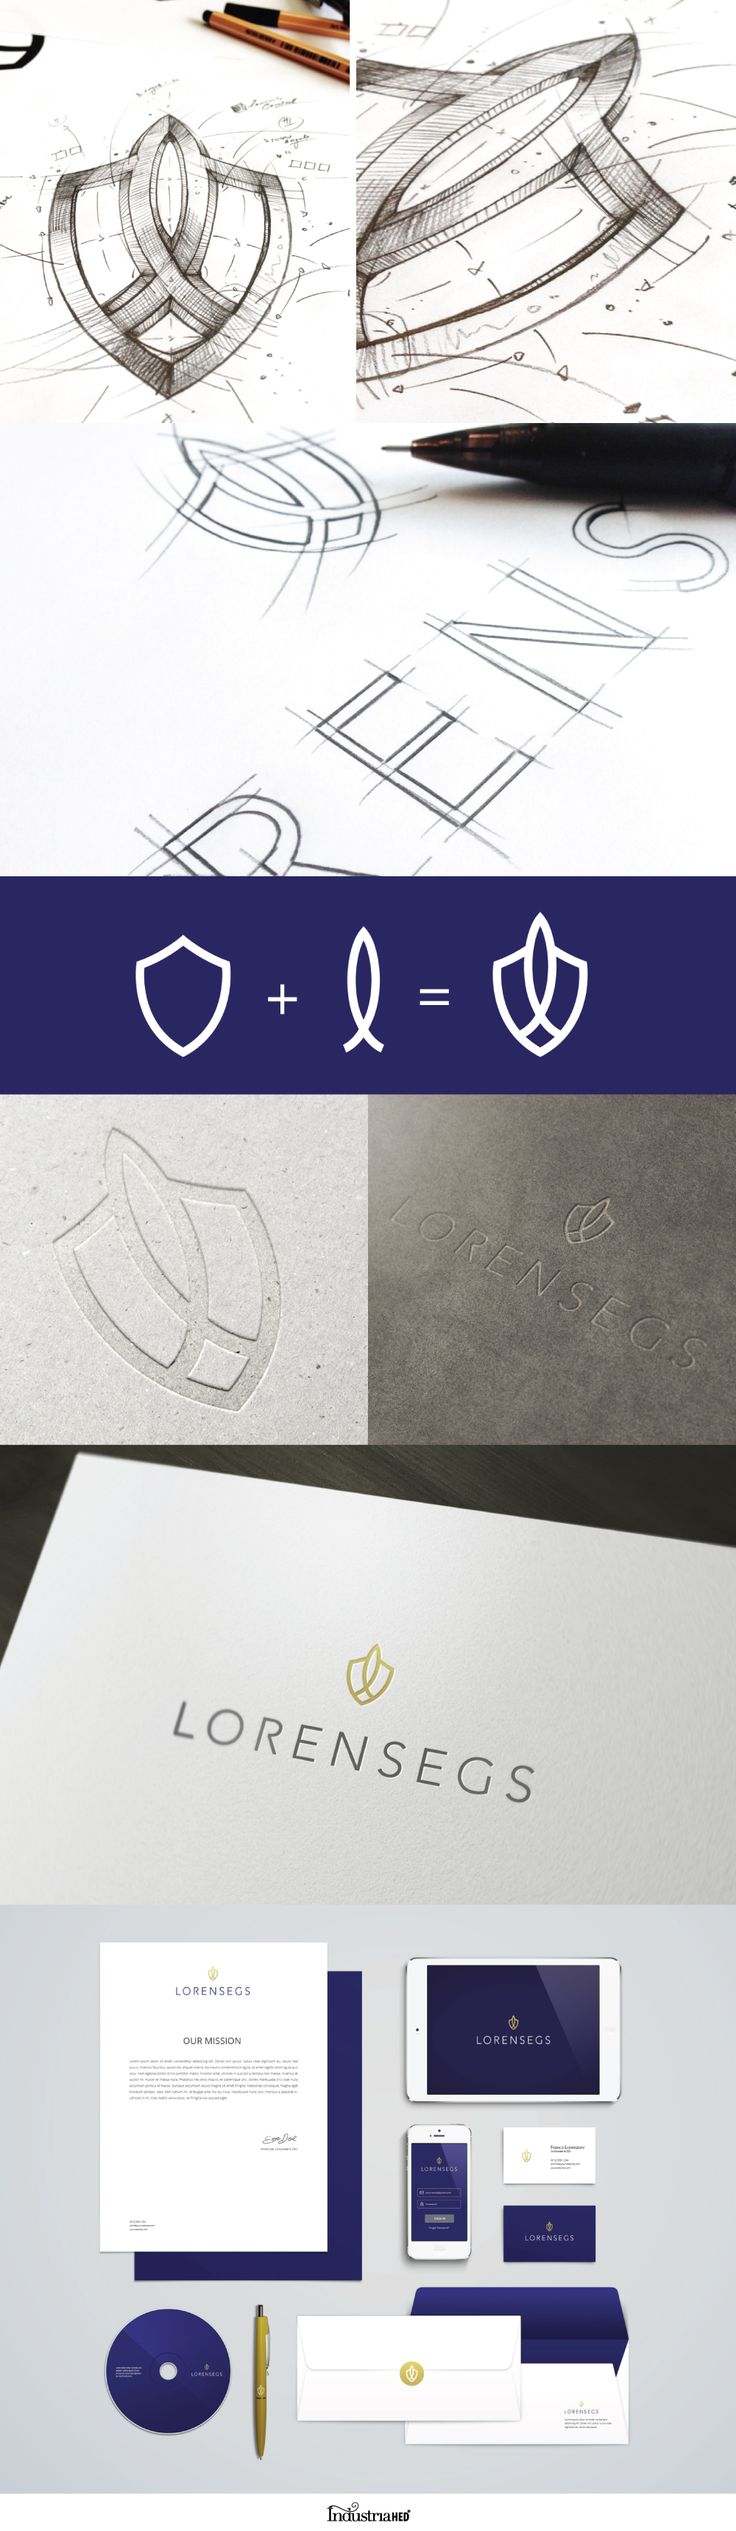 LORENSEGS // Insurance Company Identity by IndustriaHED